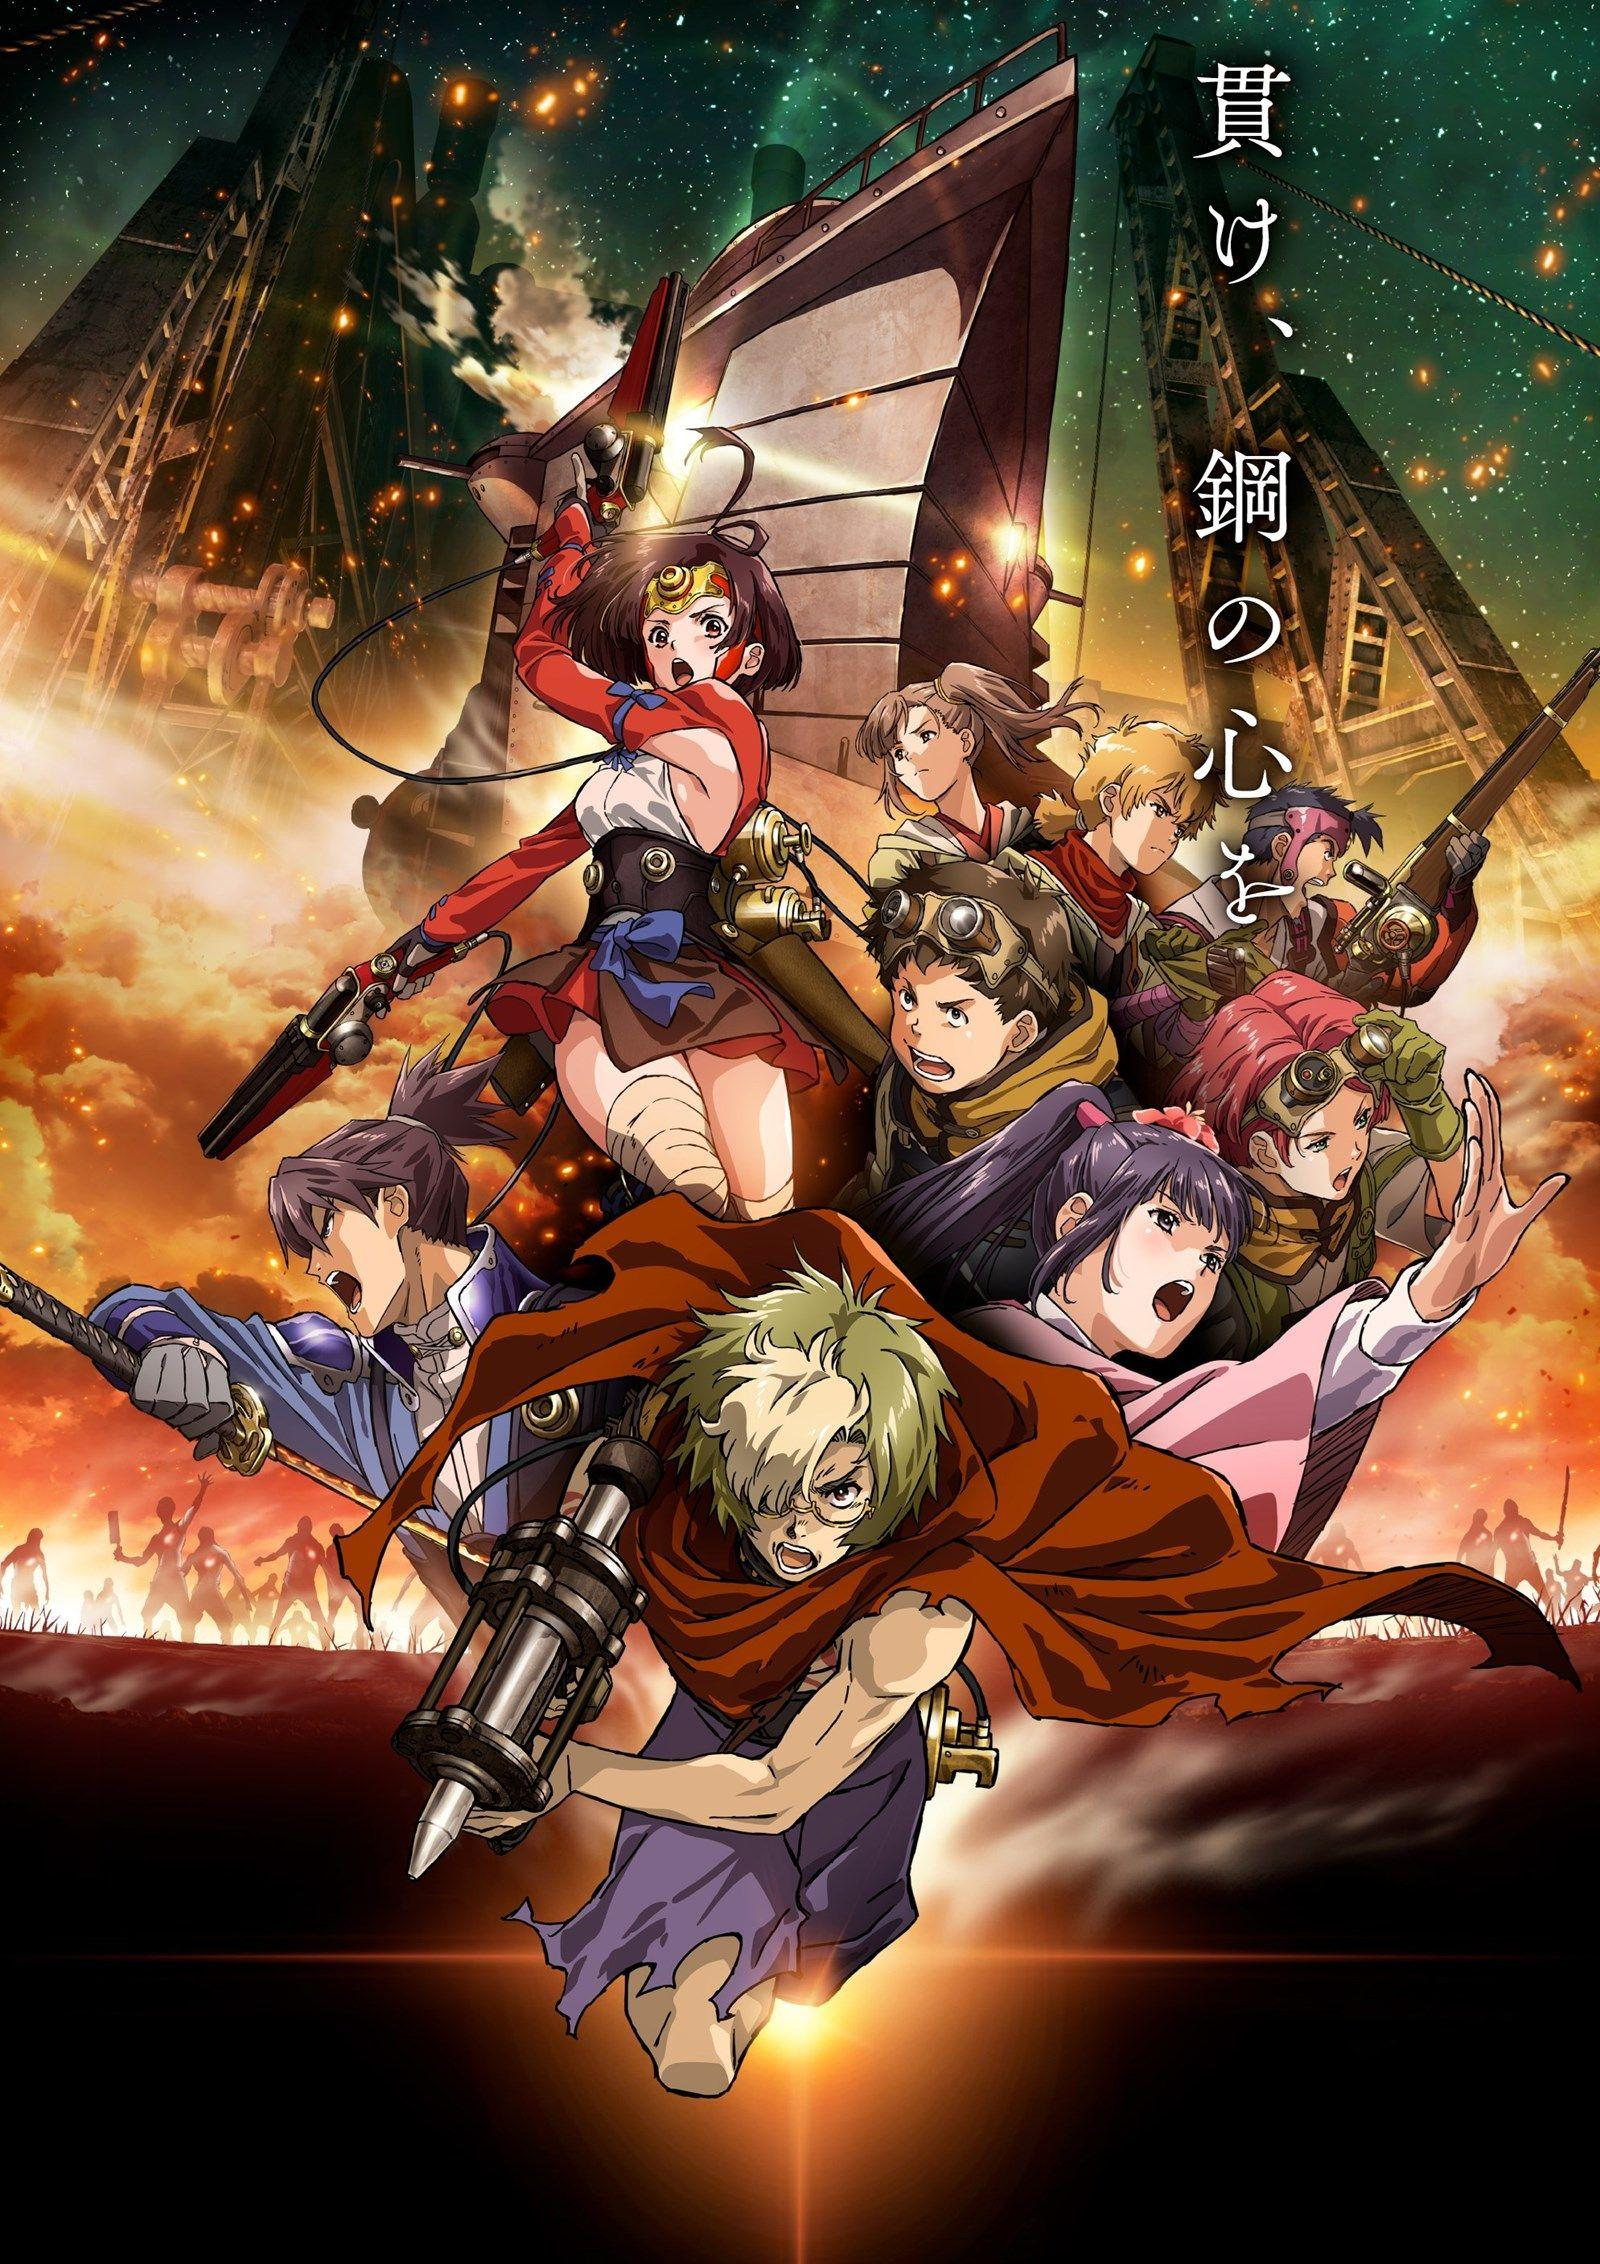 Kabaneri Of The Iron Fortress Wallpapers - Wallpaper Cave